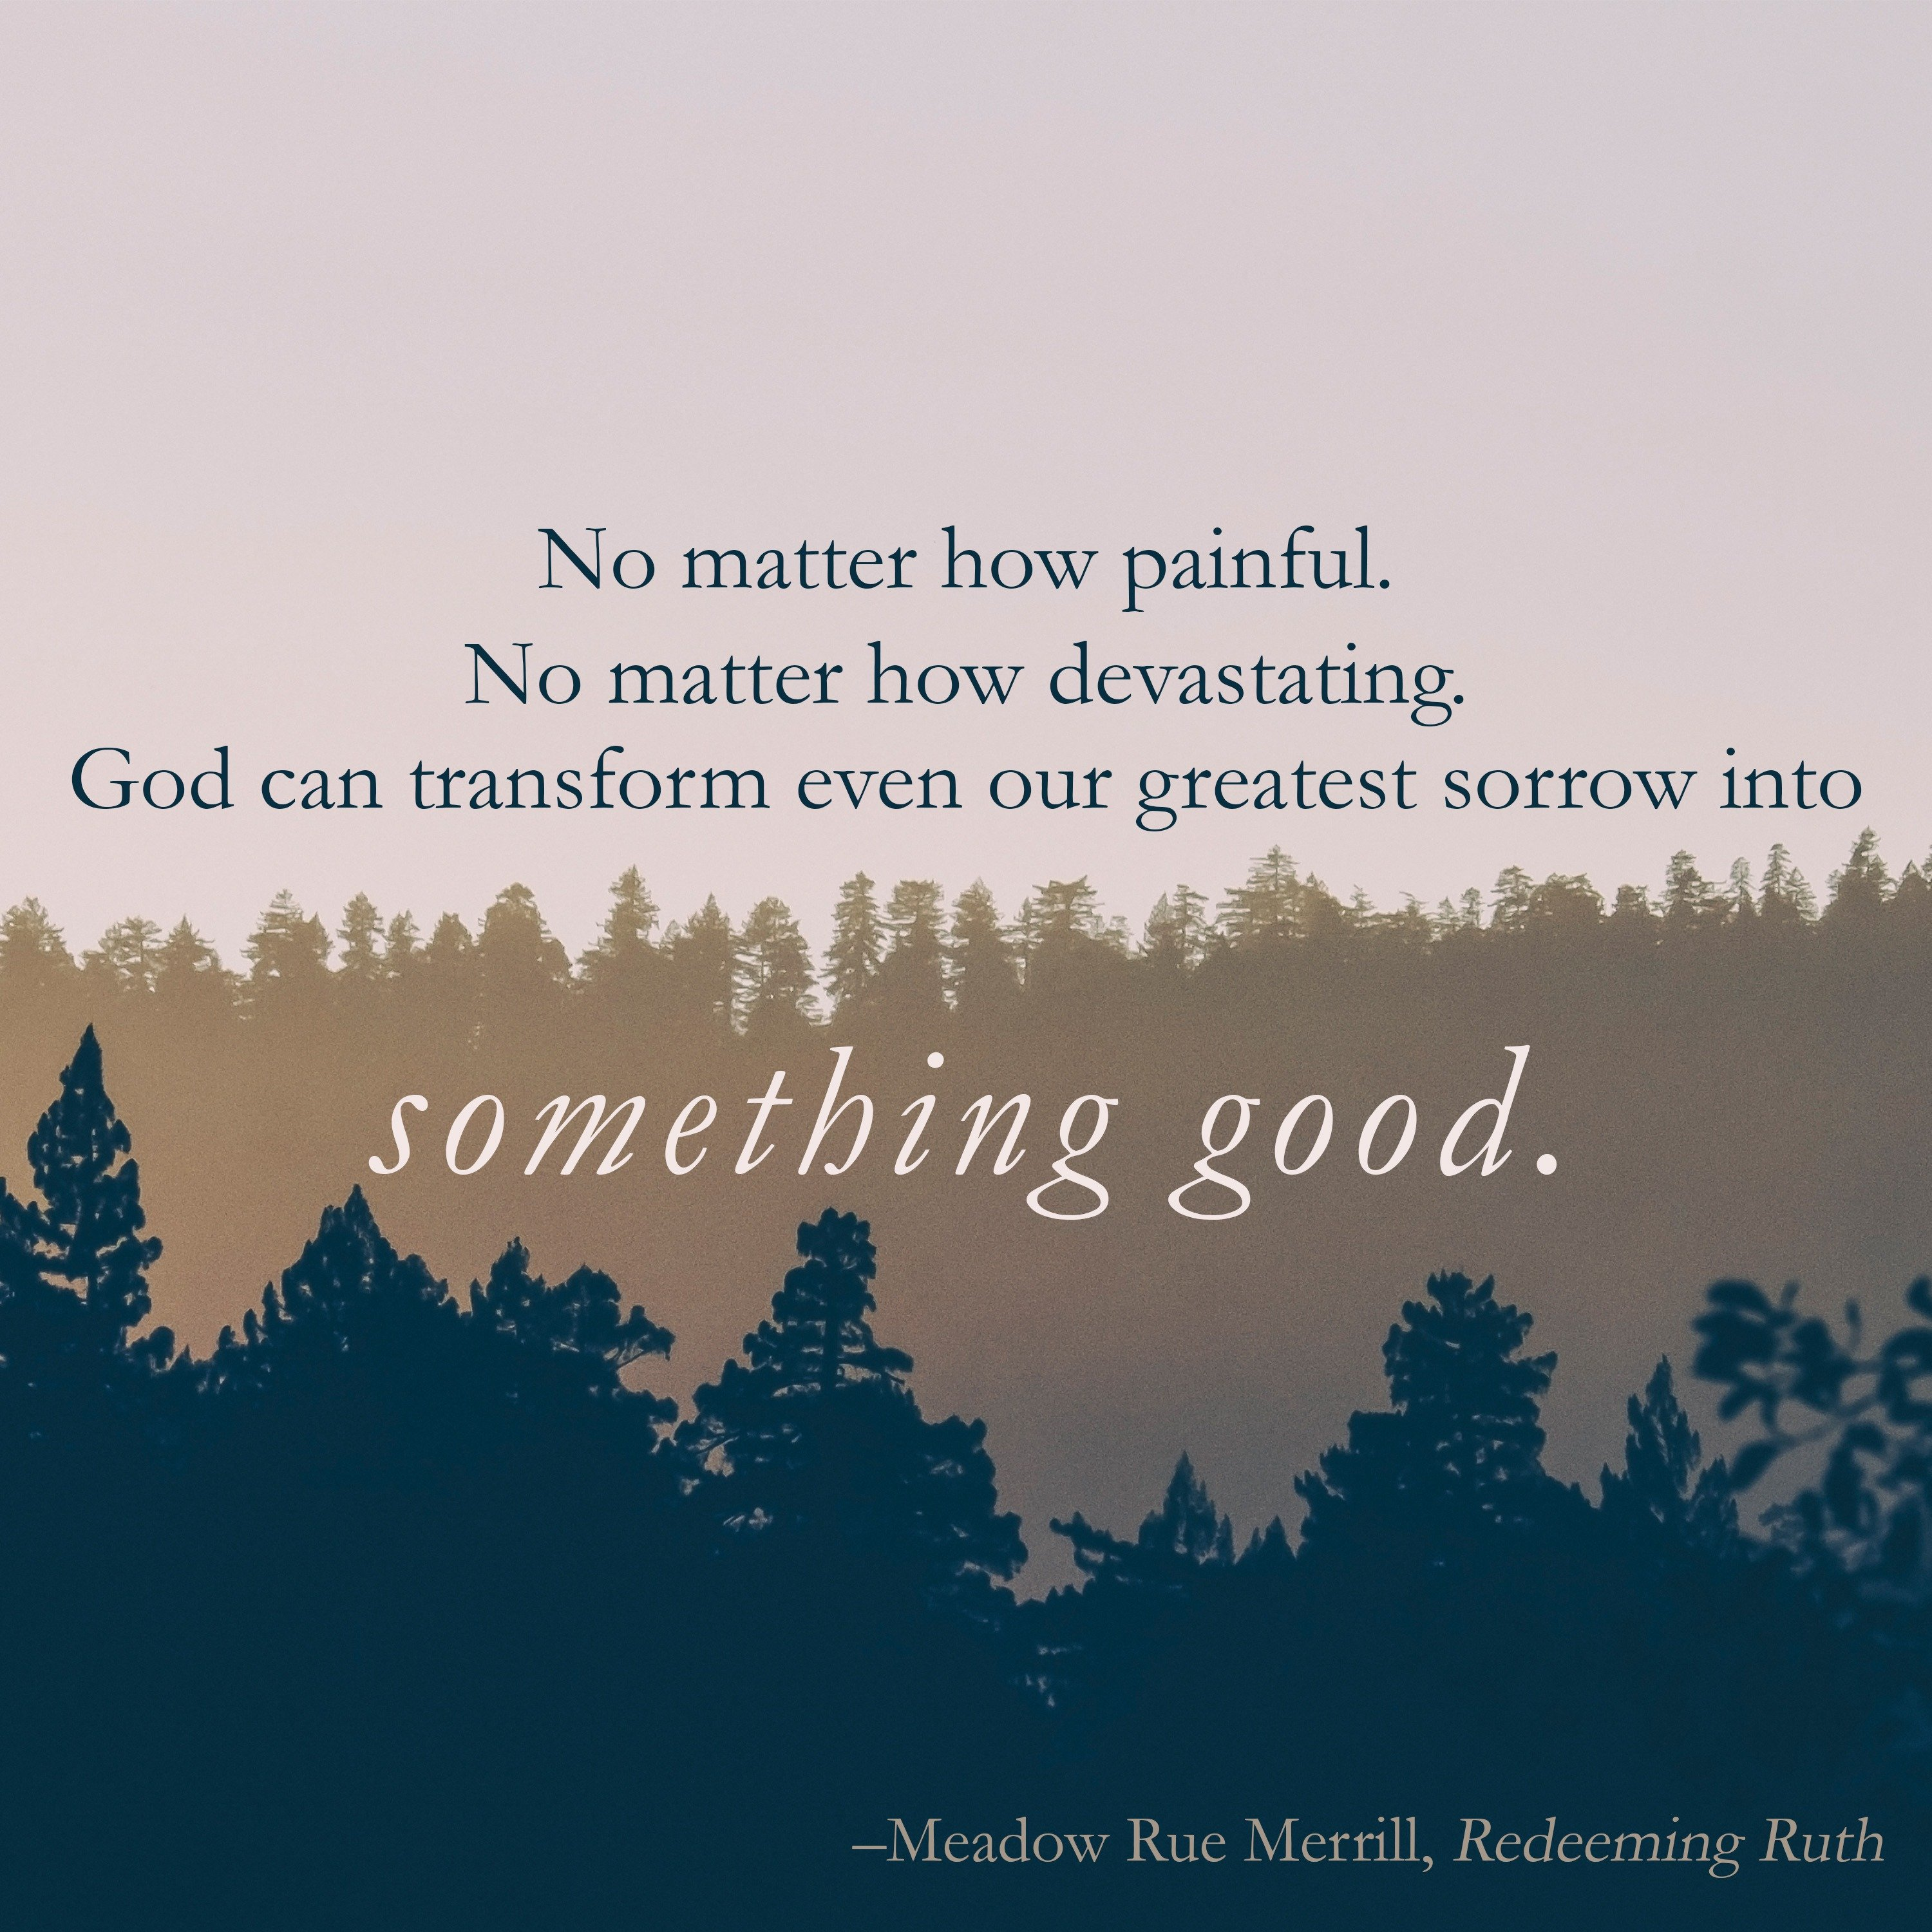 Redeeming Ruth quote 9